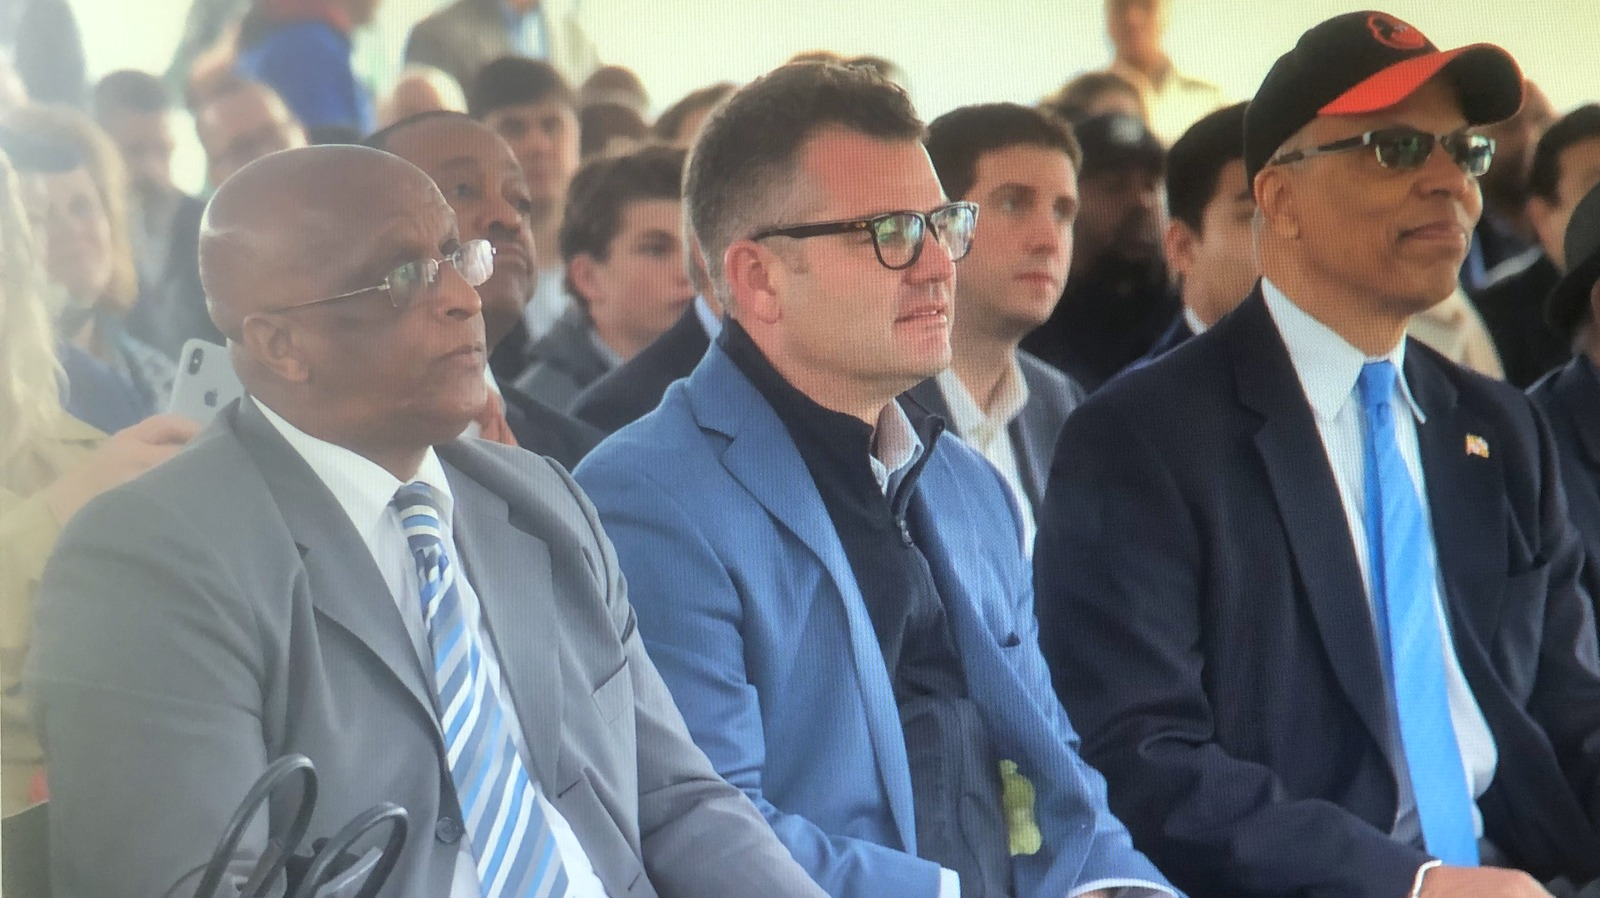 Developer Marc Weller sits between Baltimore Mayor Jack Young (left) and Maryland Lt. Governor Boyd Rutherford at a ceremonial groundbreaking event at Port Covington last year. (xxx)